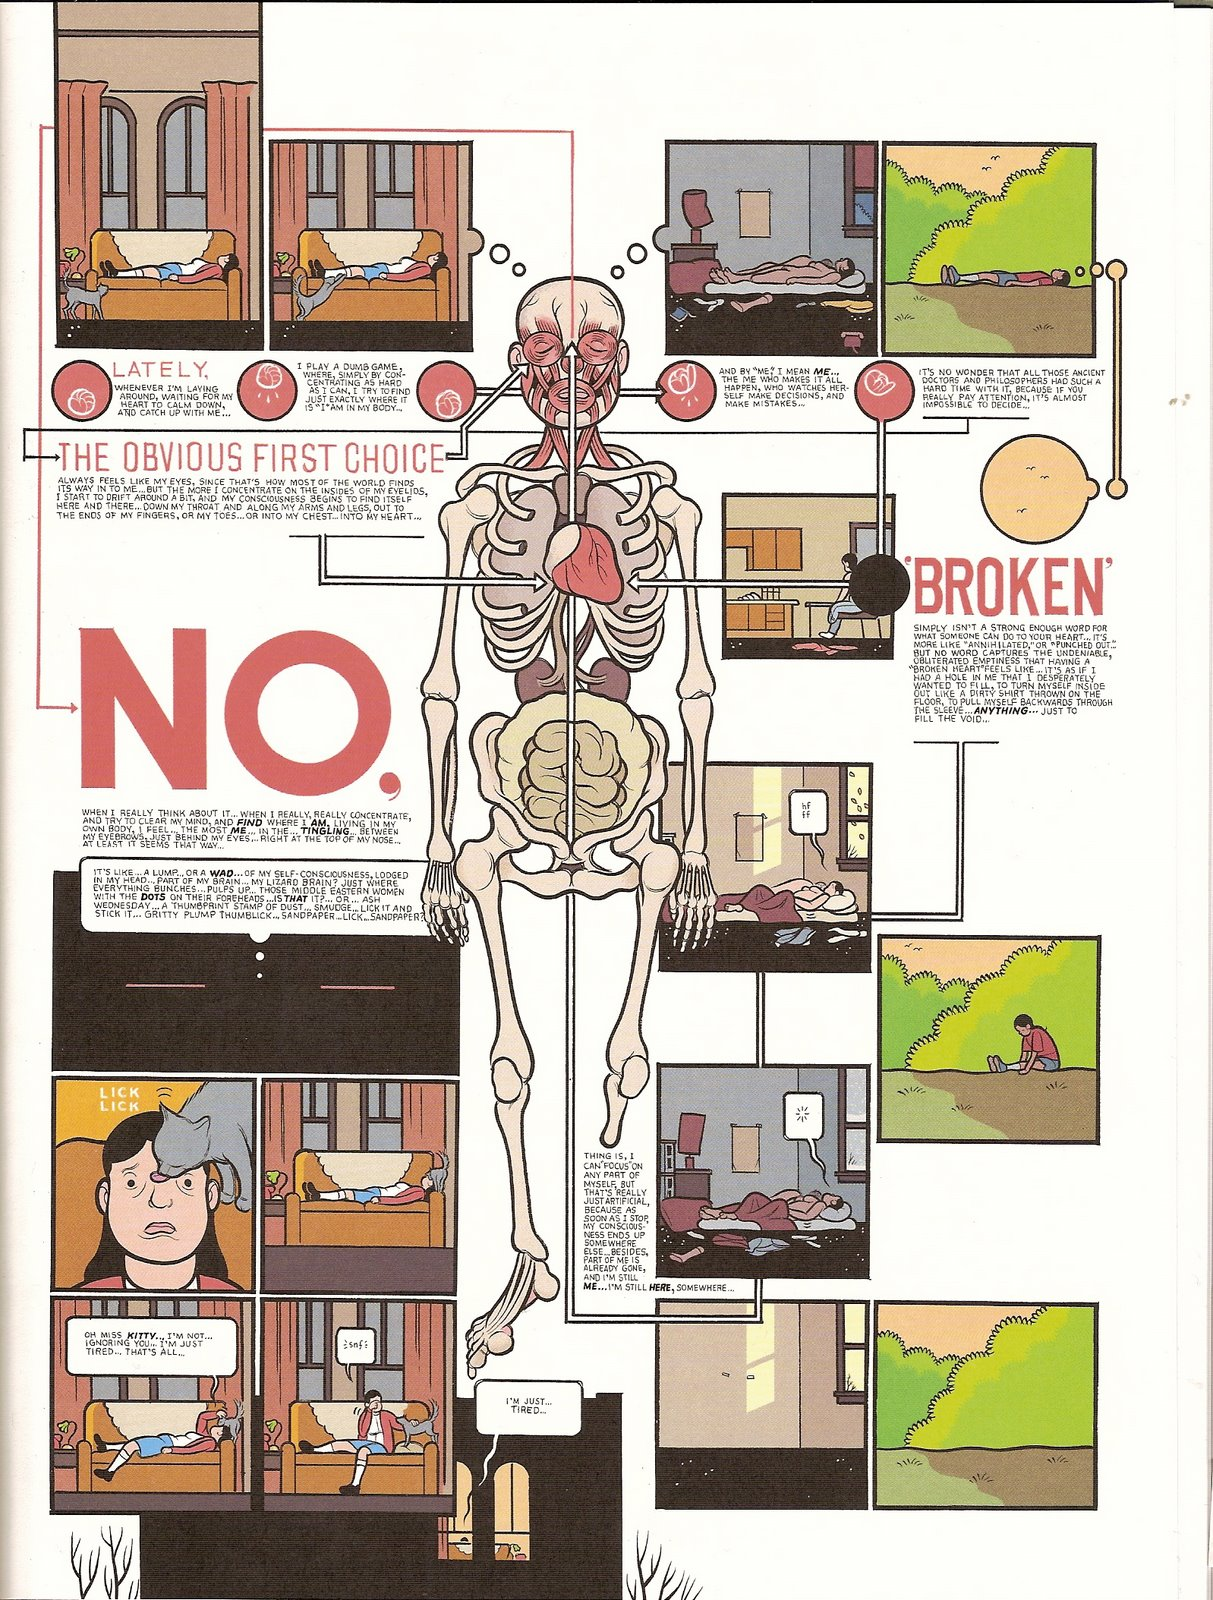 Chris+Ware+-+ACME+NL+_+18+page+1